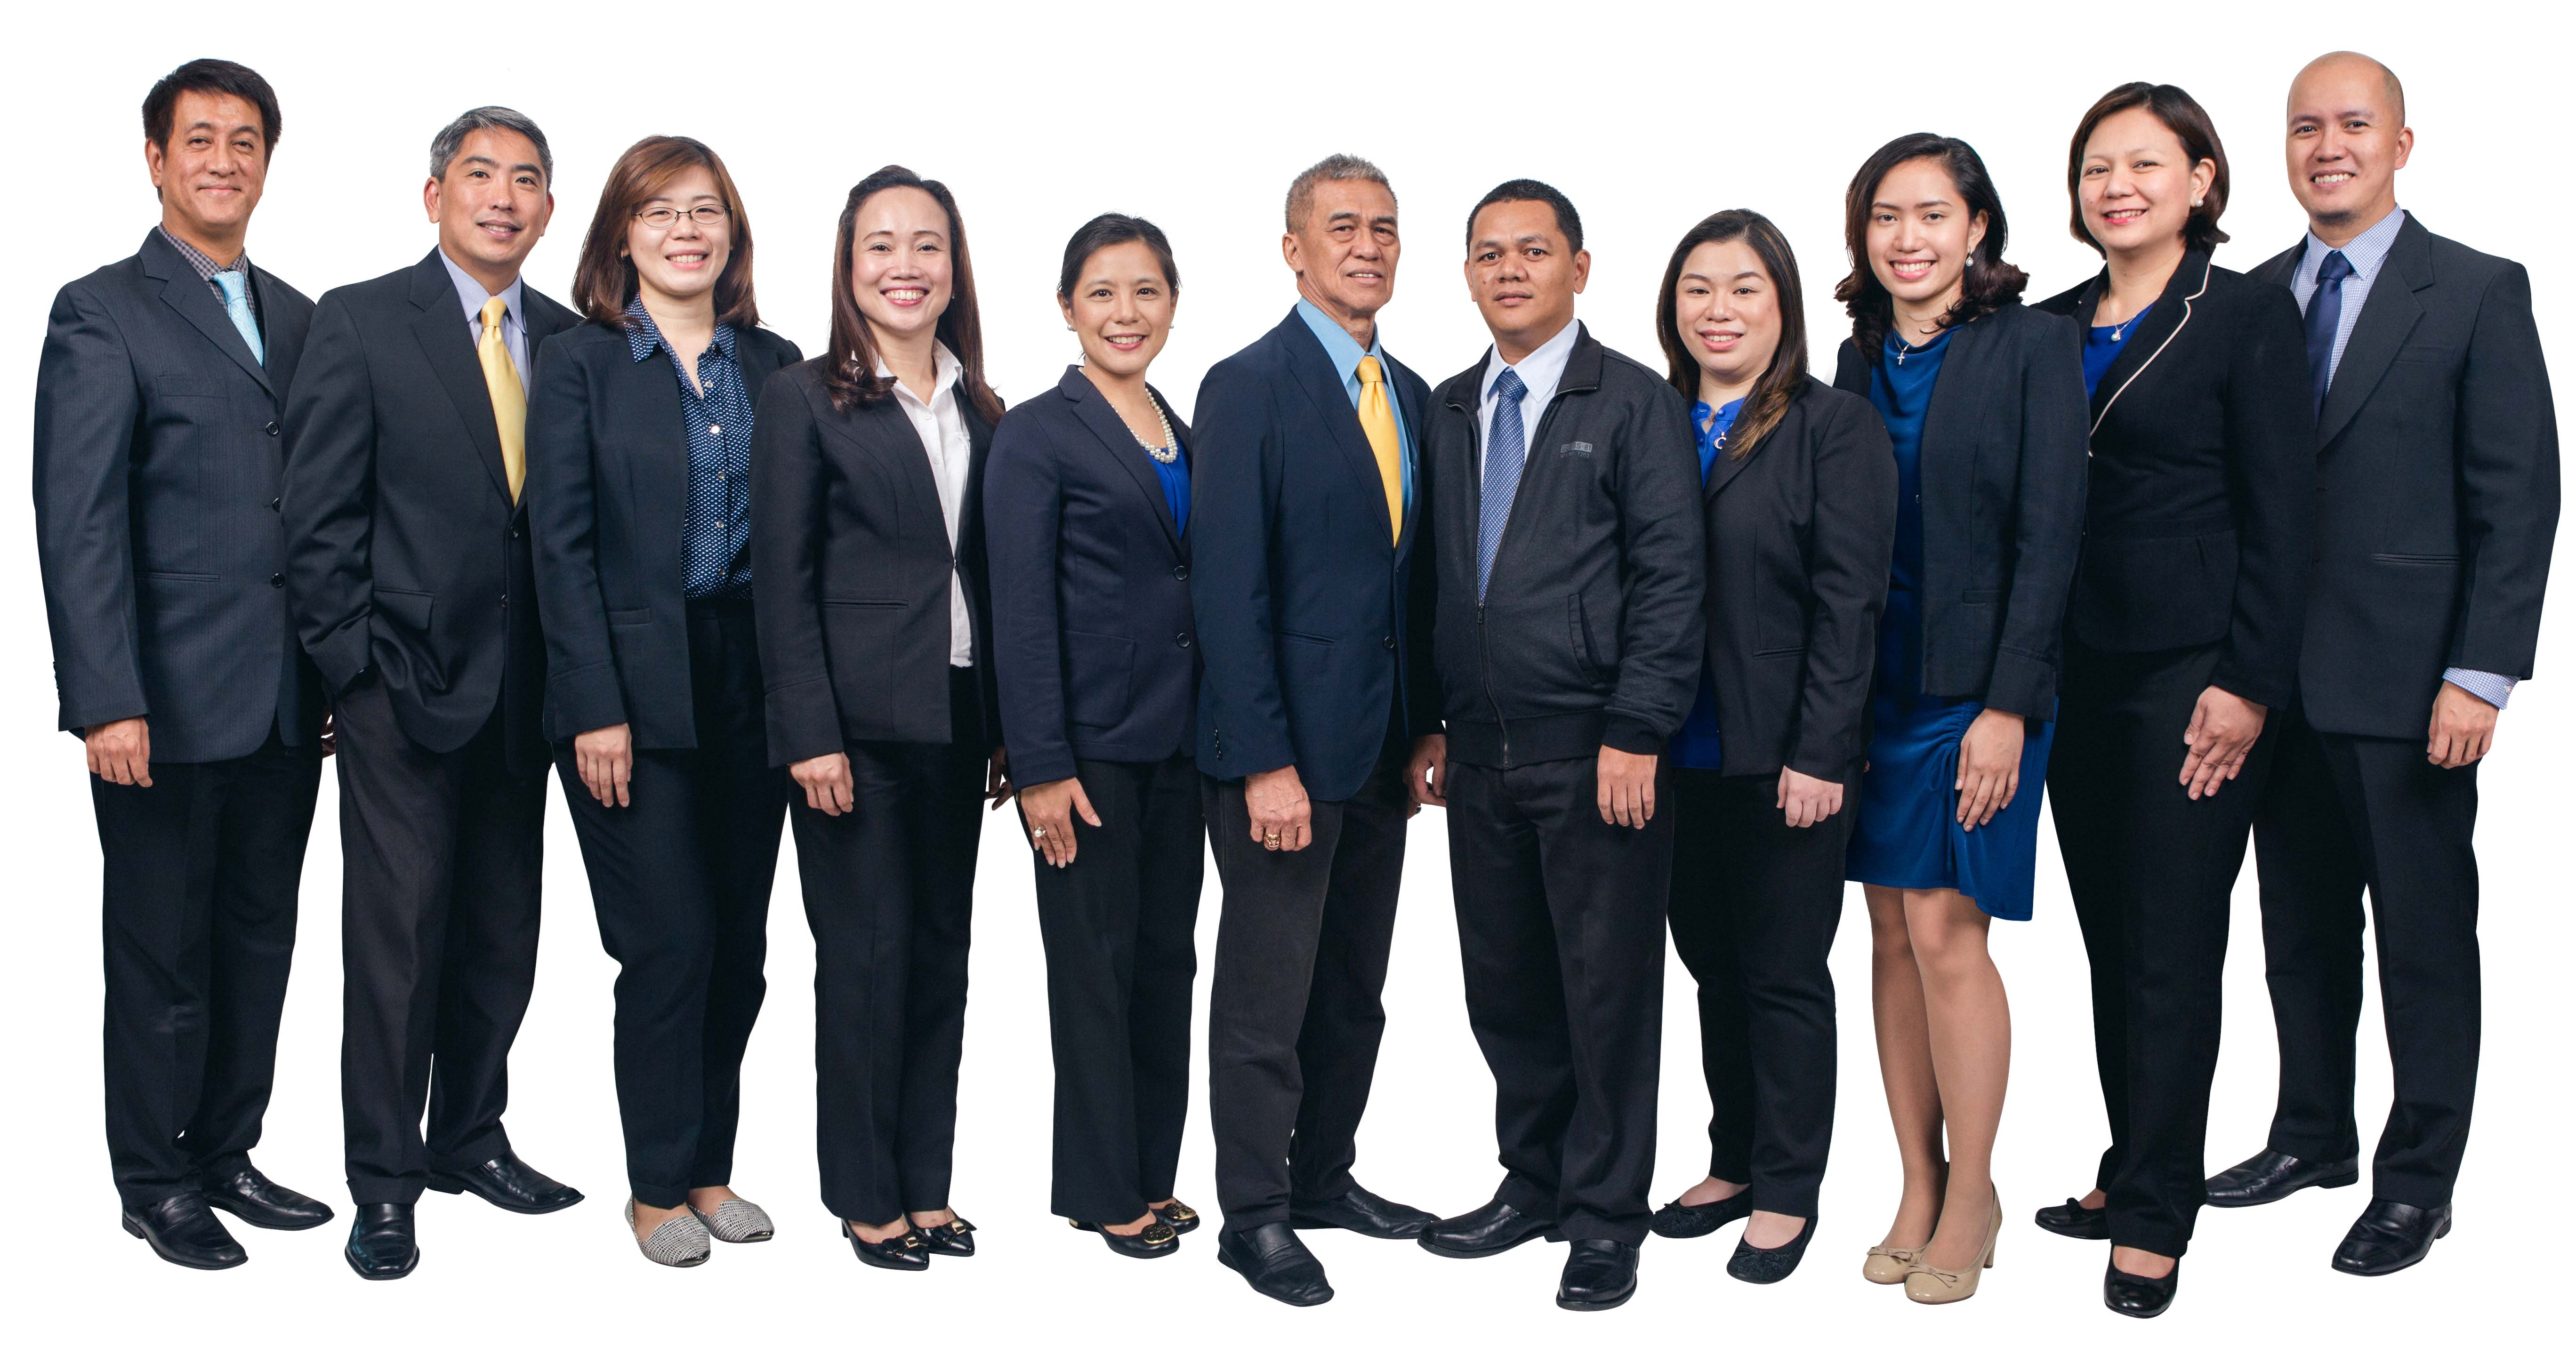 L-R: Alwin Sta. Rosa, president and general manager; Dr. Louis Jison, EyeScan director; Dr. Mary Catacutan, Research head; Anneline Baseleres, Patient Flow Center head; Dr. Patricia Manuel, Strategic Operations head; Dr. Juan Ma. Pablo Nañagas, Medical and Research director; Stanley Mendoza, Treasury, Accounting and Patient Benefits head; Dr. Lynnie Cu, Optical Services head; Audrey Trinidad, Marketing head; Maribel Rubia, Business Development and Marketing OIC; Dr. Gualberto Dato, Optometry Services OIC; and Dr. Joy Pabellon, CRO head (not in photo)